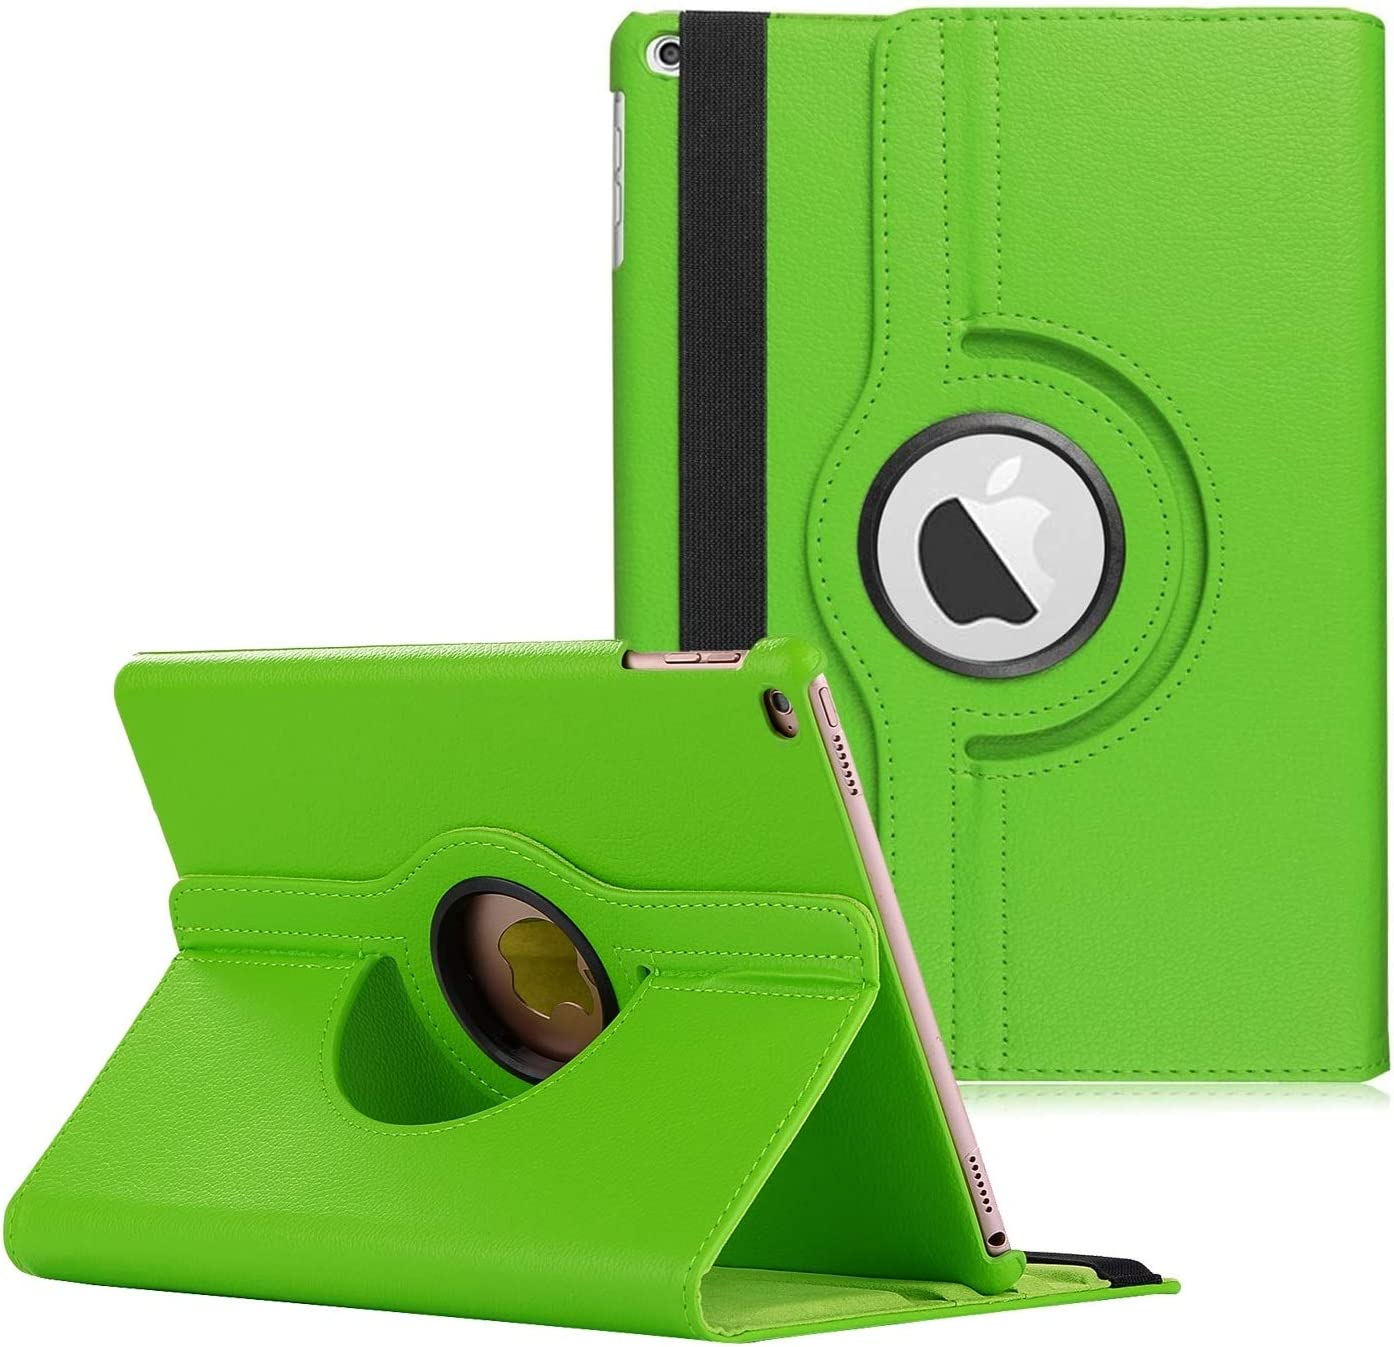 "New iPad 2017 9.7"" / iPad Air 2 Leather Case,360 Degree Rotating Stand Smart Cover with Auto Sleep Wake for Apple iPad Air or New iPad 9.7 Inch 2017 Tablet (Green)"